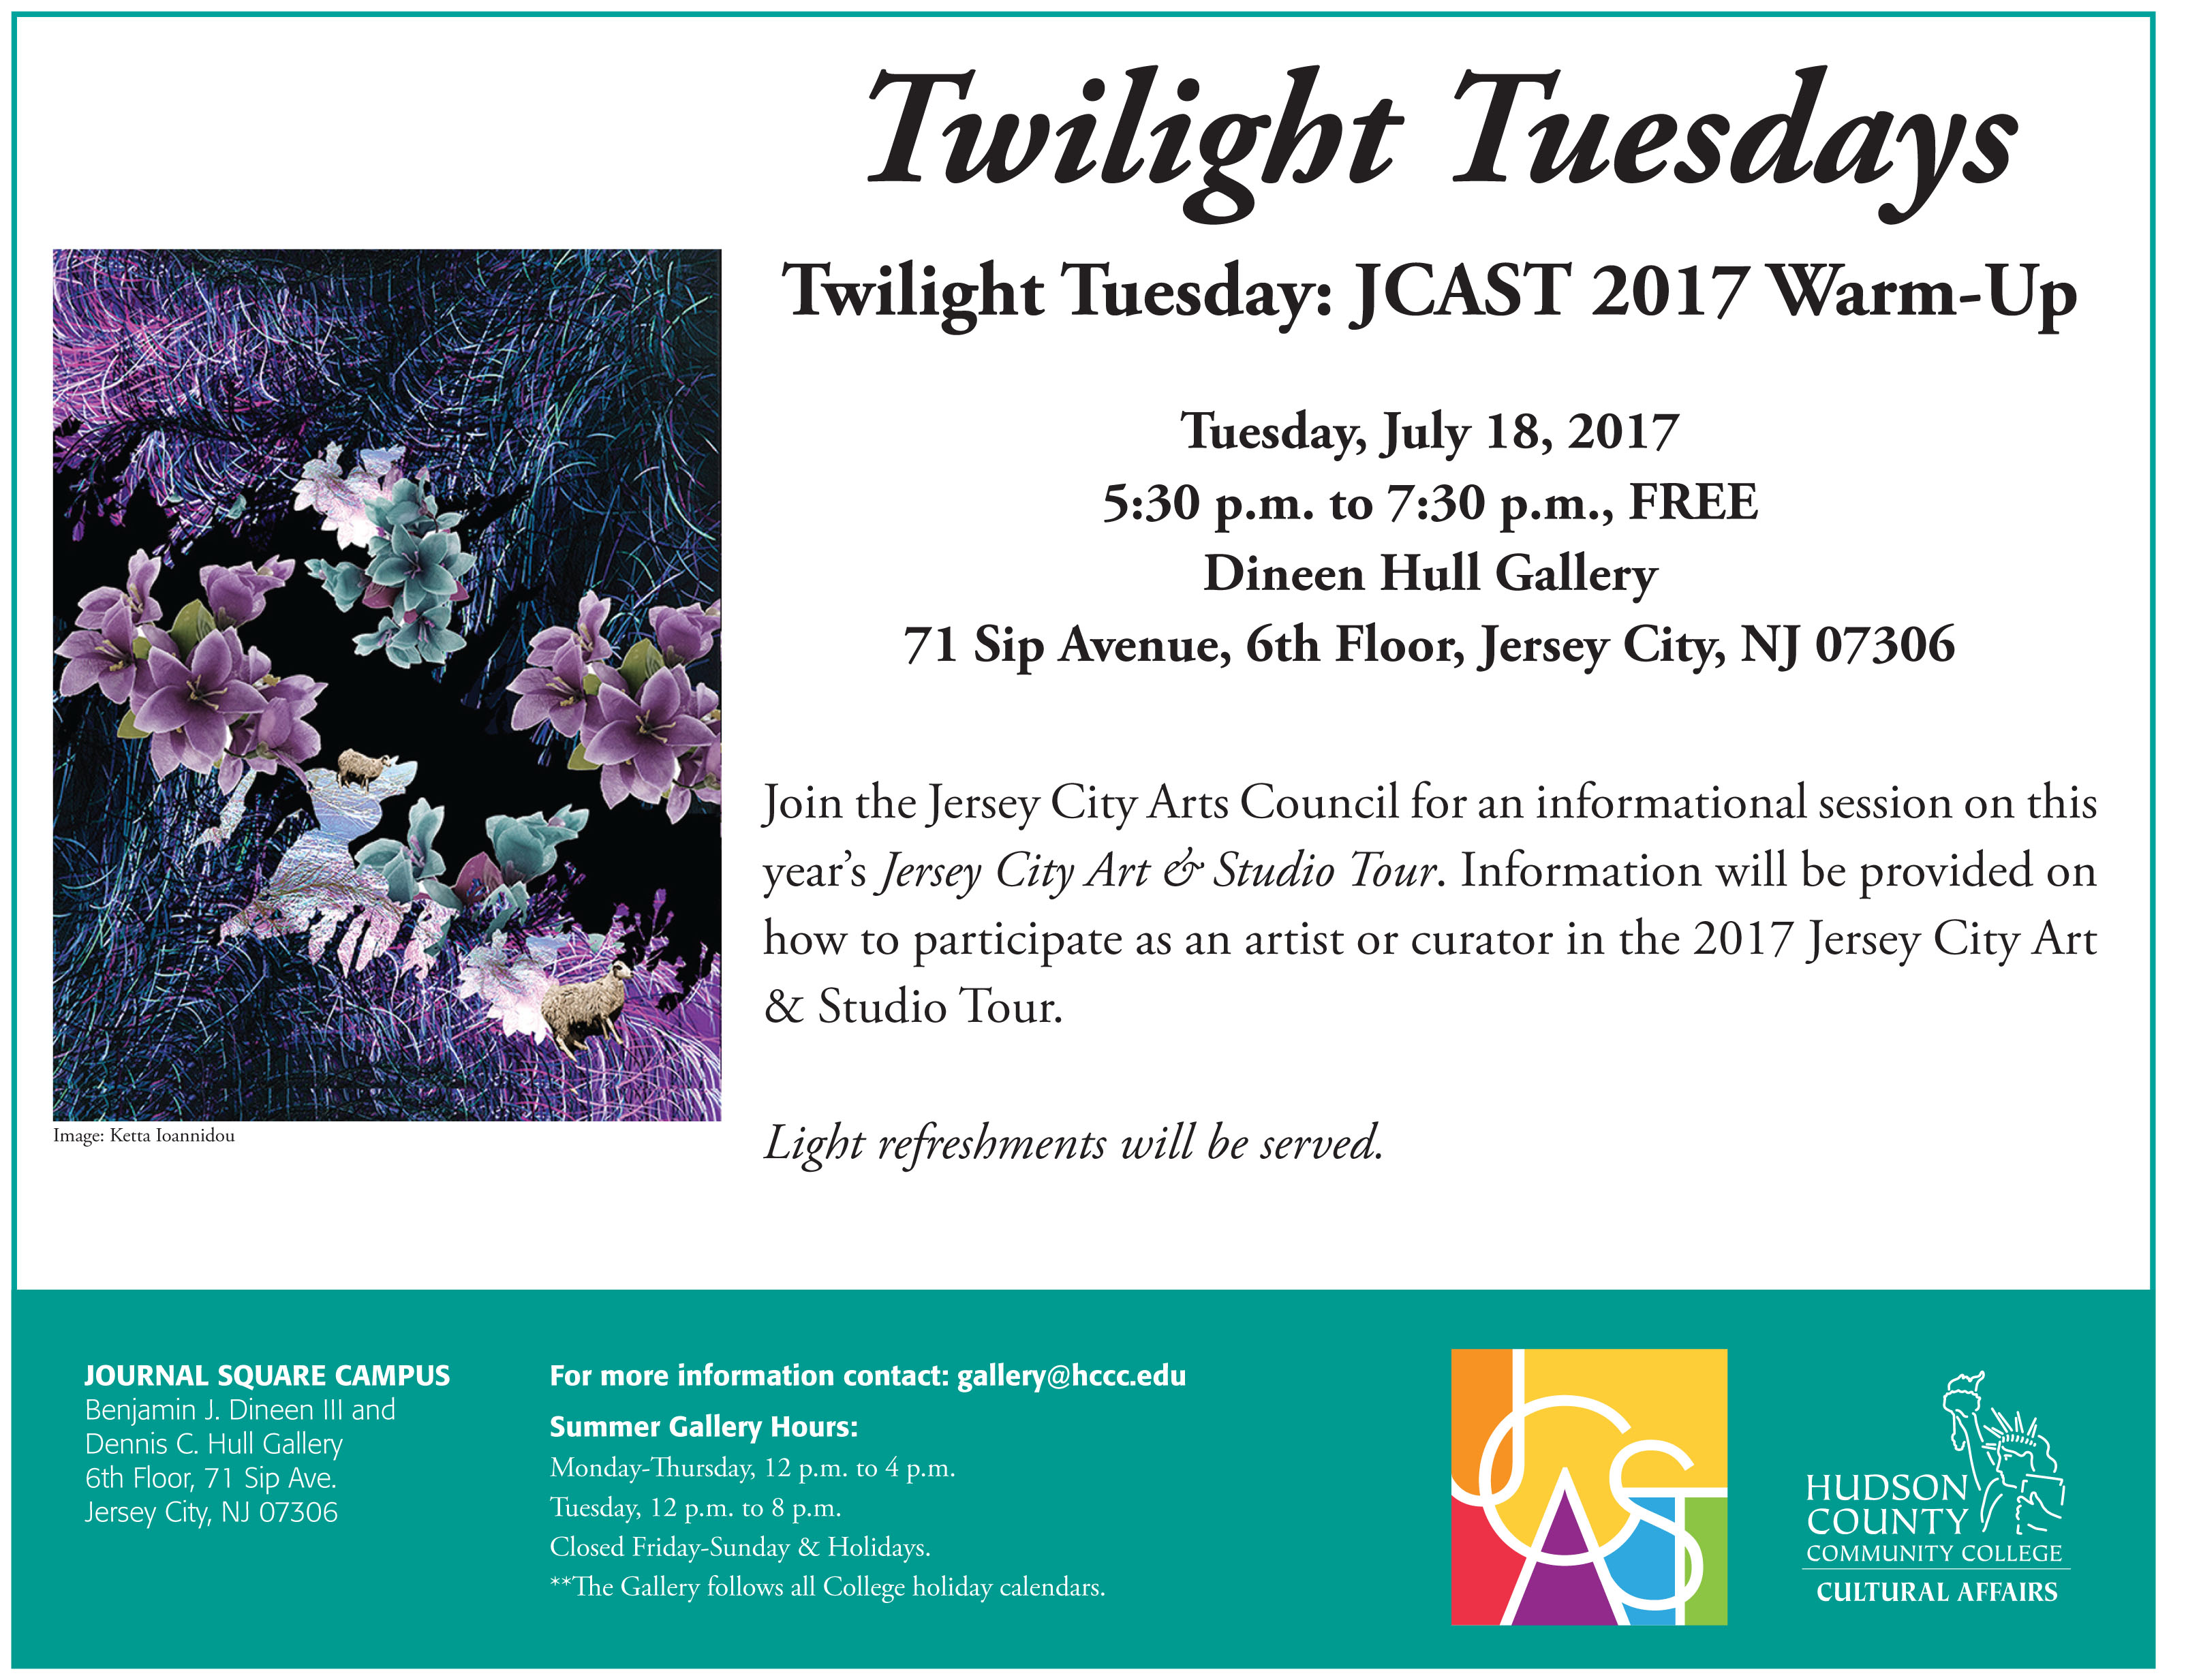 Twilight Tuesday: JCAST 2017 Warm-Up - The Office of Cultural Affairs